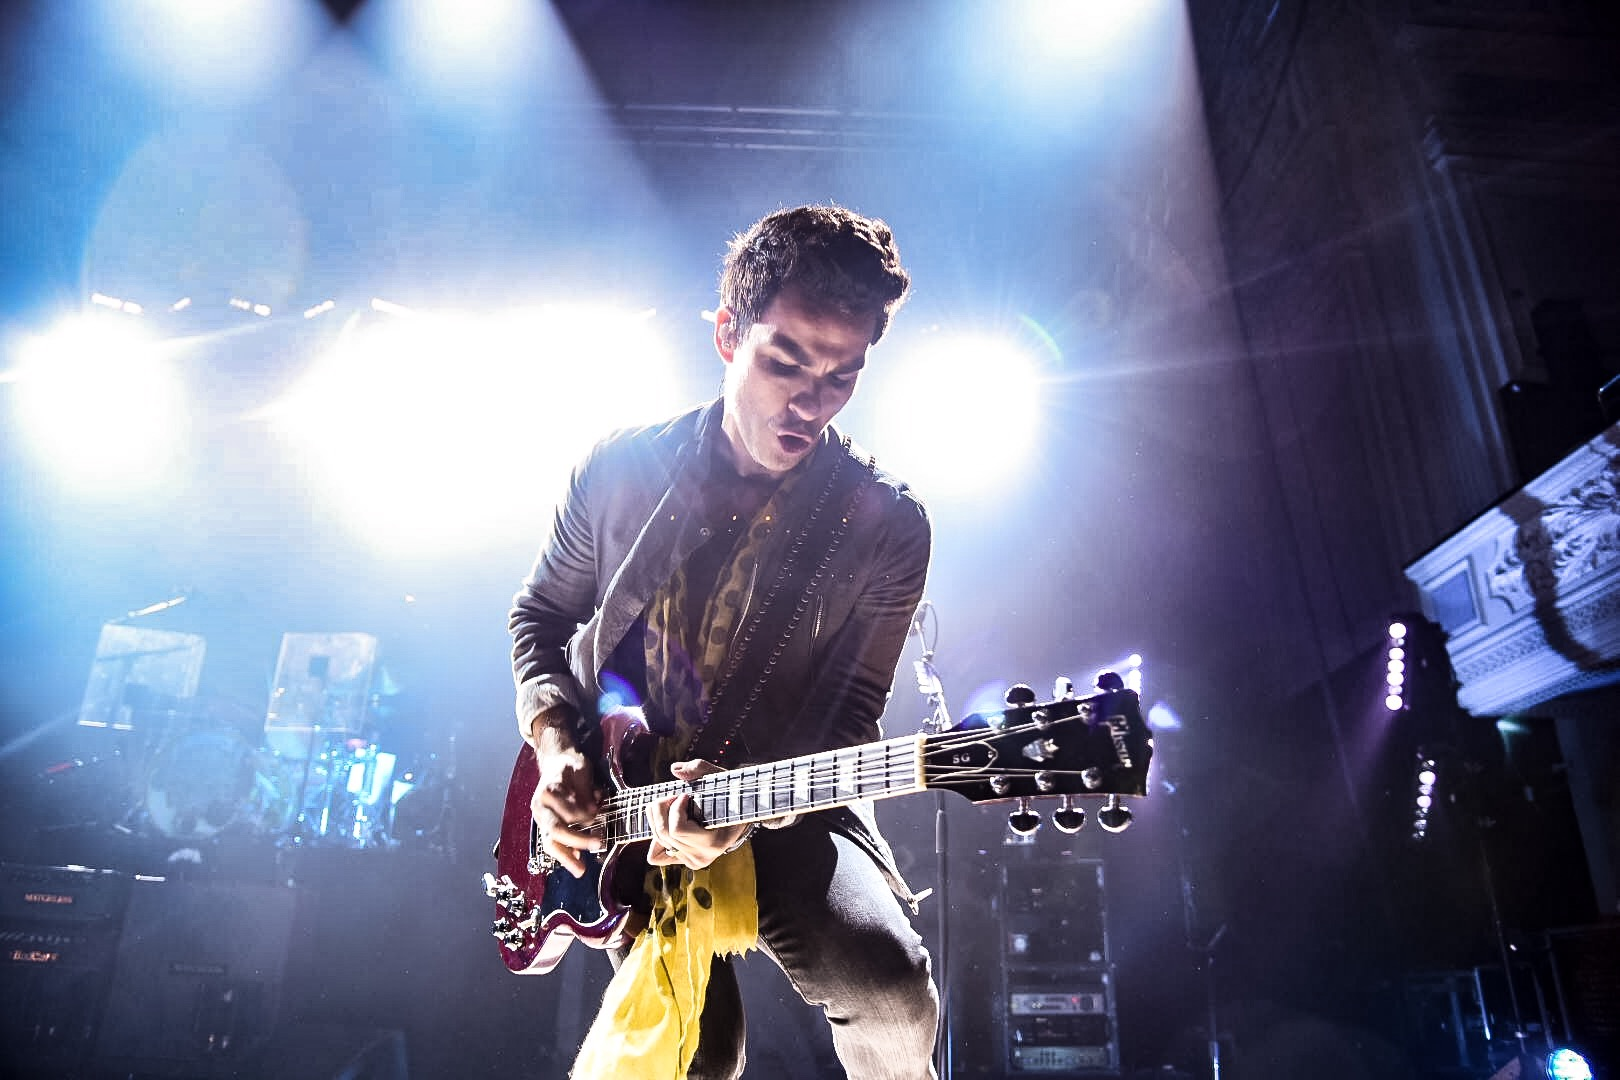 KELLY JONES OF STEREOPHONICS PERFORMING AT DUNDEE'S CAIRD HALL - 22/08/2017  PICTURE BY: CALUM BUCHAN PHOTOGRAPHY